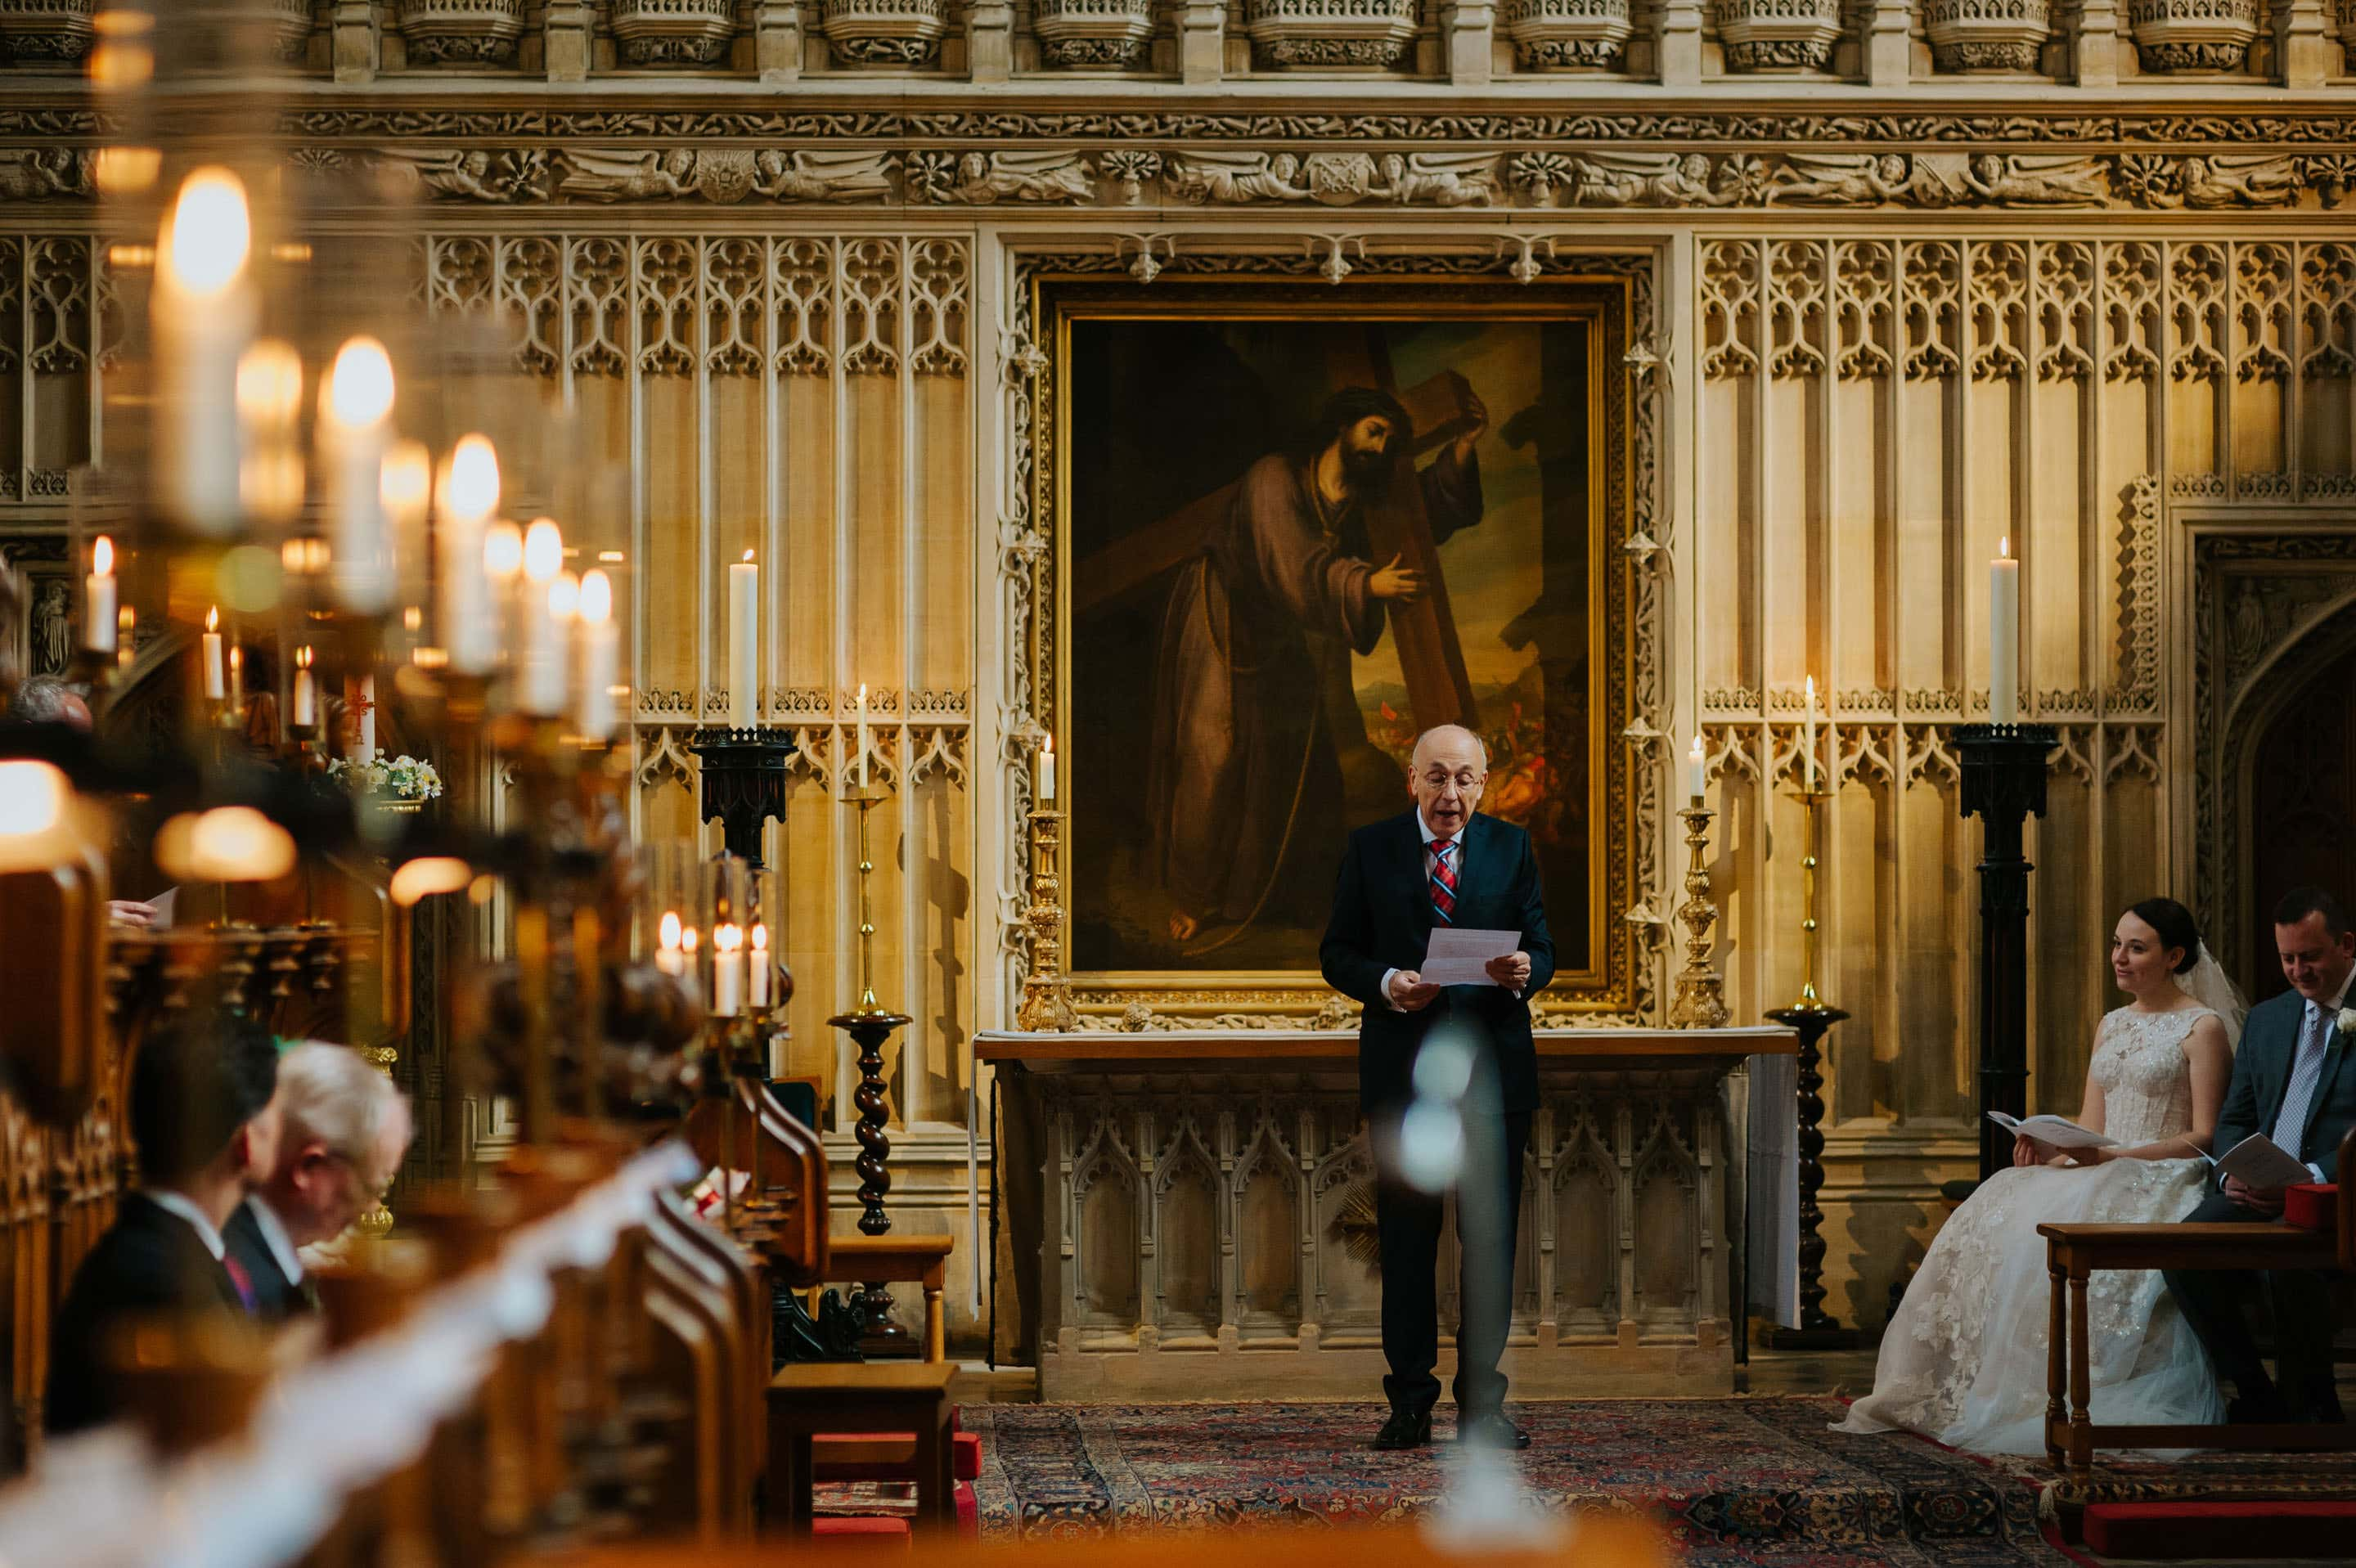 wedding at magdalen college in oxford 28 - Tommie + Virginia | Wedding at Magdalen College in Oxford